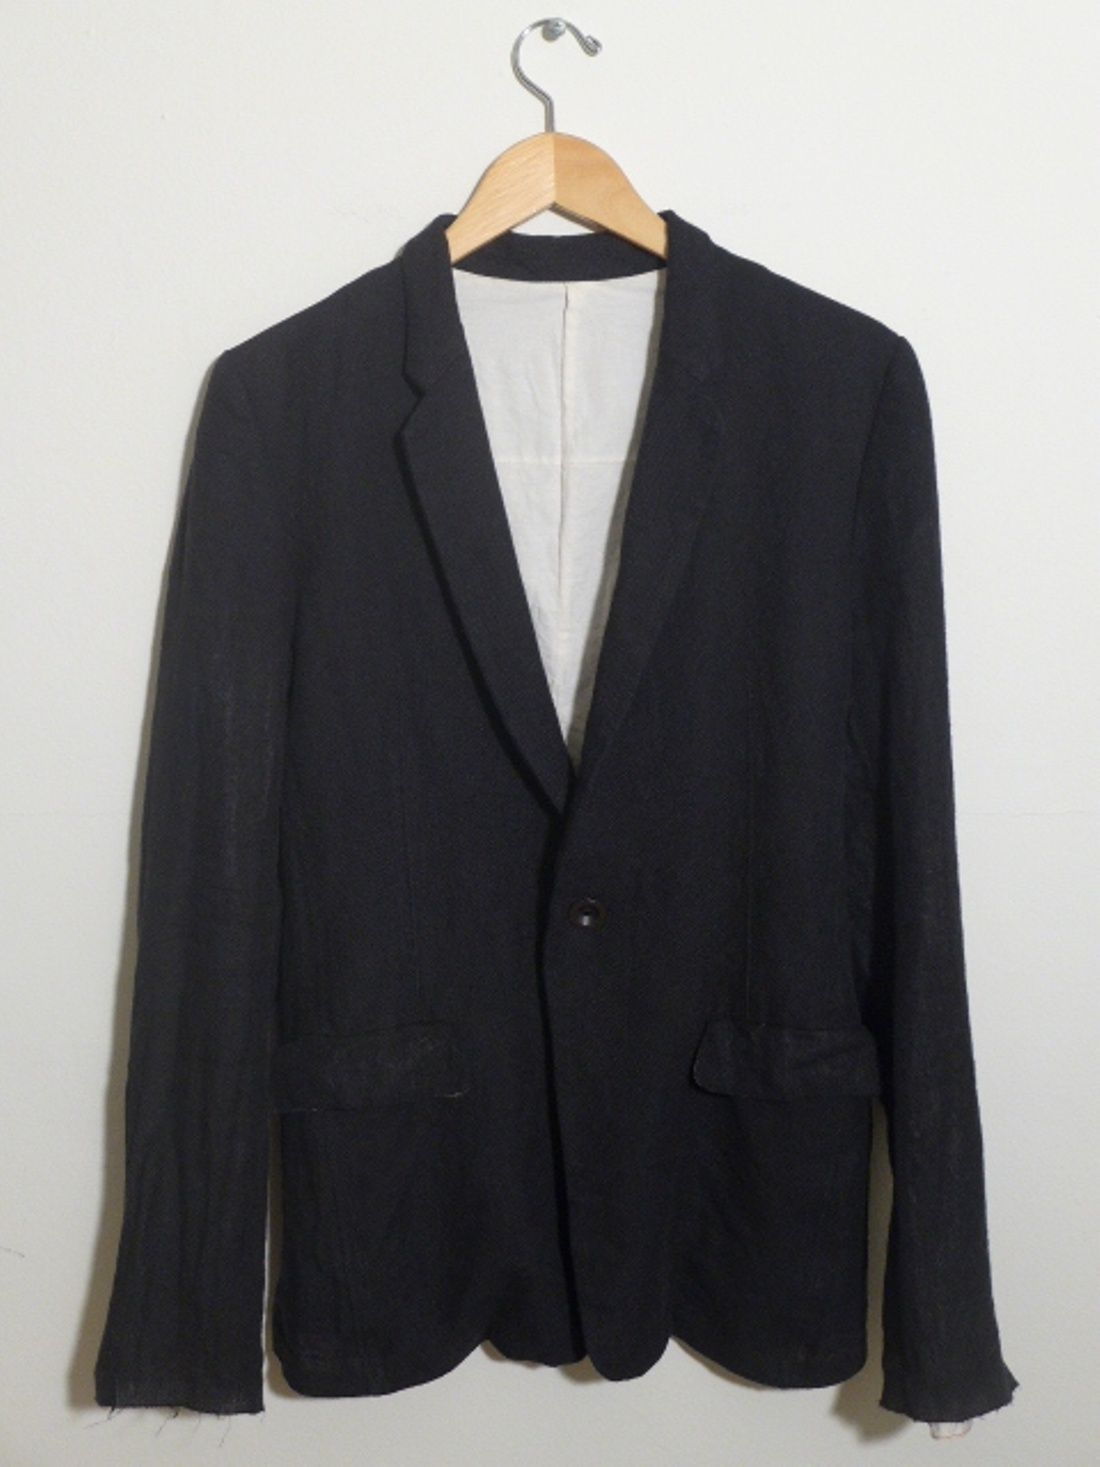 The Viridi Anne Black Linen Blazer